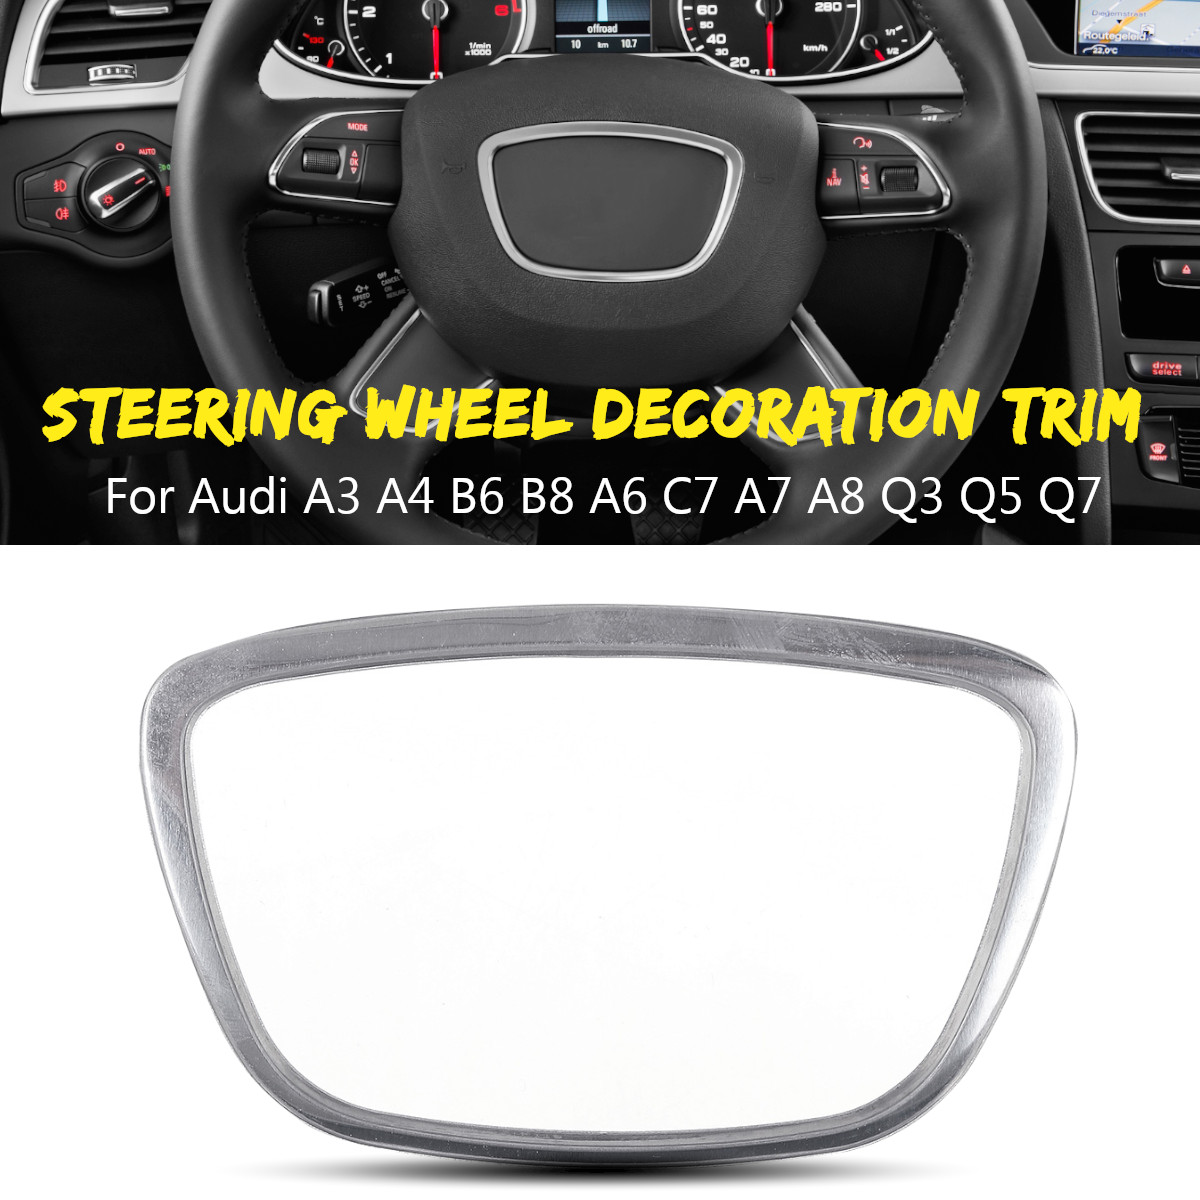 Car Steering Wheel Chrome Sticker Trim Cover Cap Decoration For <font><b>Audi</b></font> A3 <font><b>A4</b></font> B6 B8 A6 C7 A7 A8 Q3 Q5 Q7 image